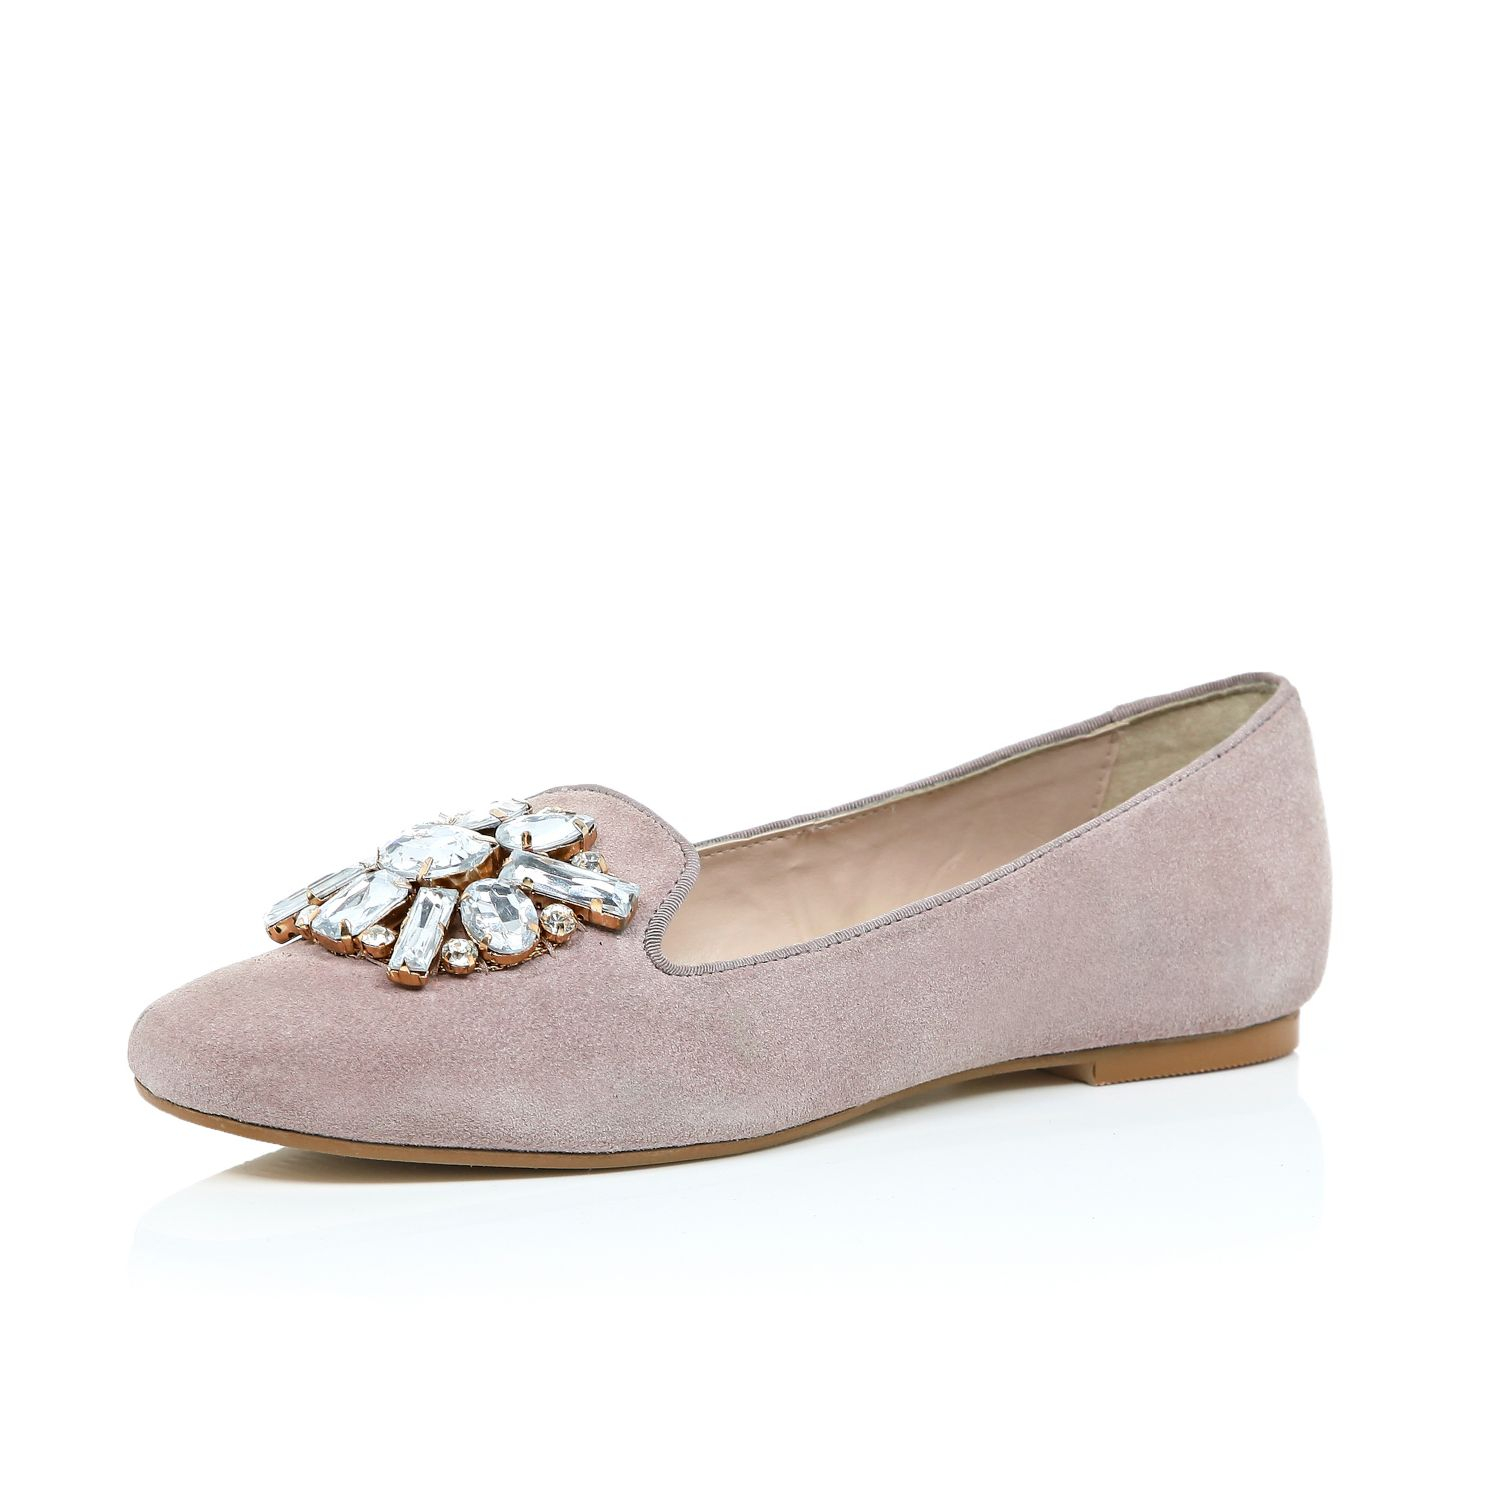 19842825321 River Island Pink Suede Embellished Ballerina Flats in Natural - Lyst